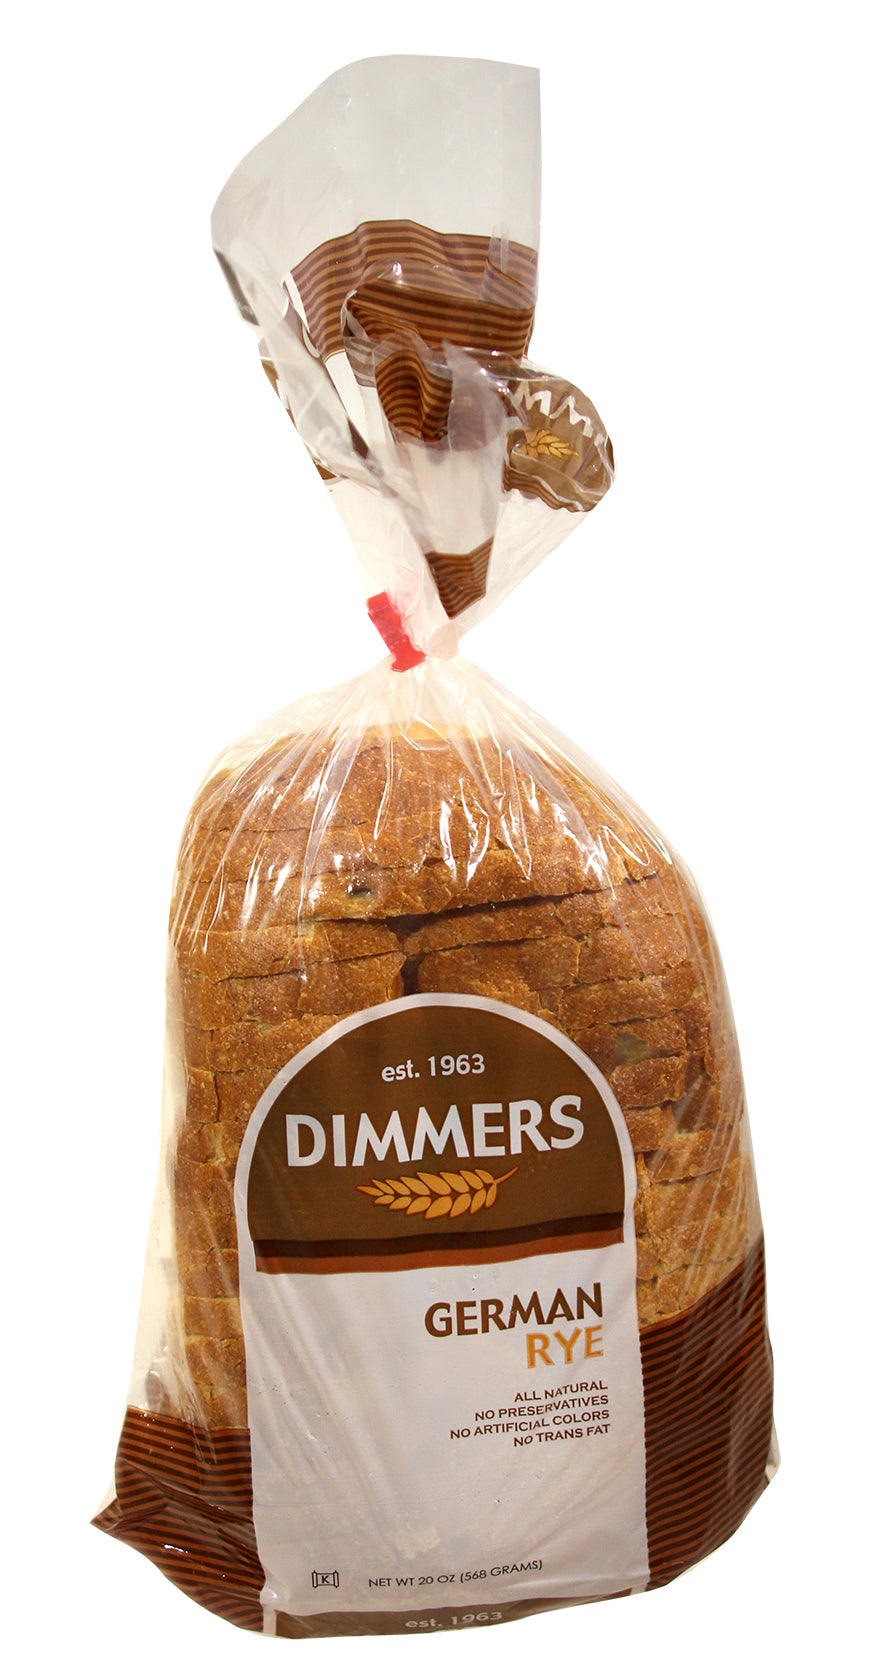 2 Packs of Dimmers GERMAN RYE Sliced Bread - 20oz (2Day FedEx Express FREE Shipping!)